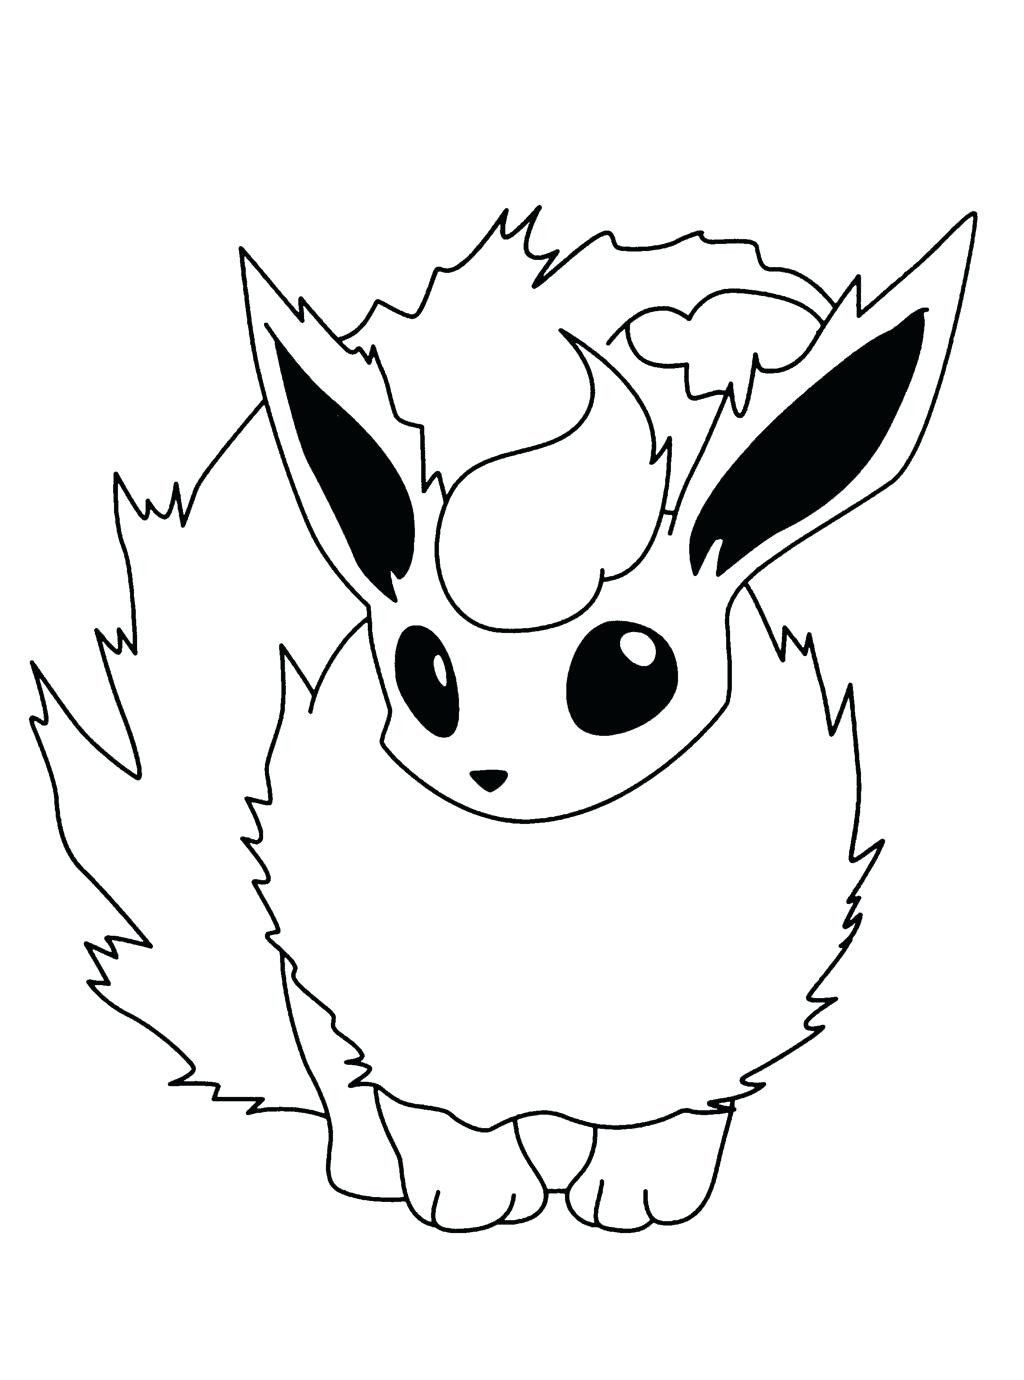 Legendary Pokemon Coloring Pages New Pokemon Card Coloring Sheets Safewaysheet In 2020 Pokemon Coloring Pages Pokemon Coloring Sheets Pokemon Coloring